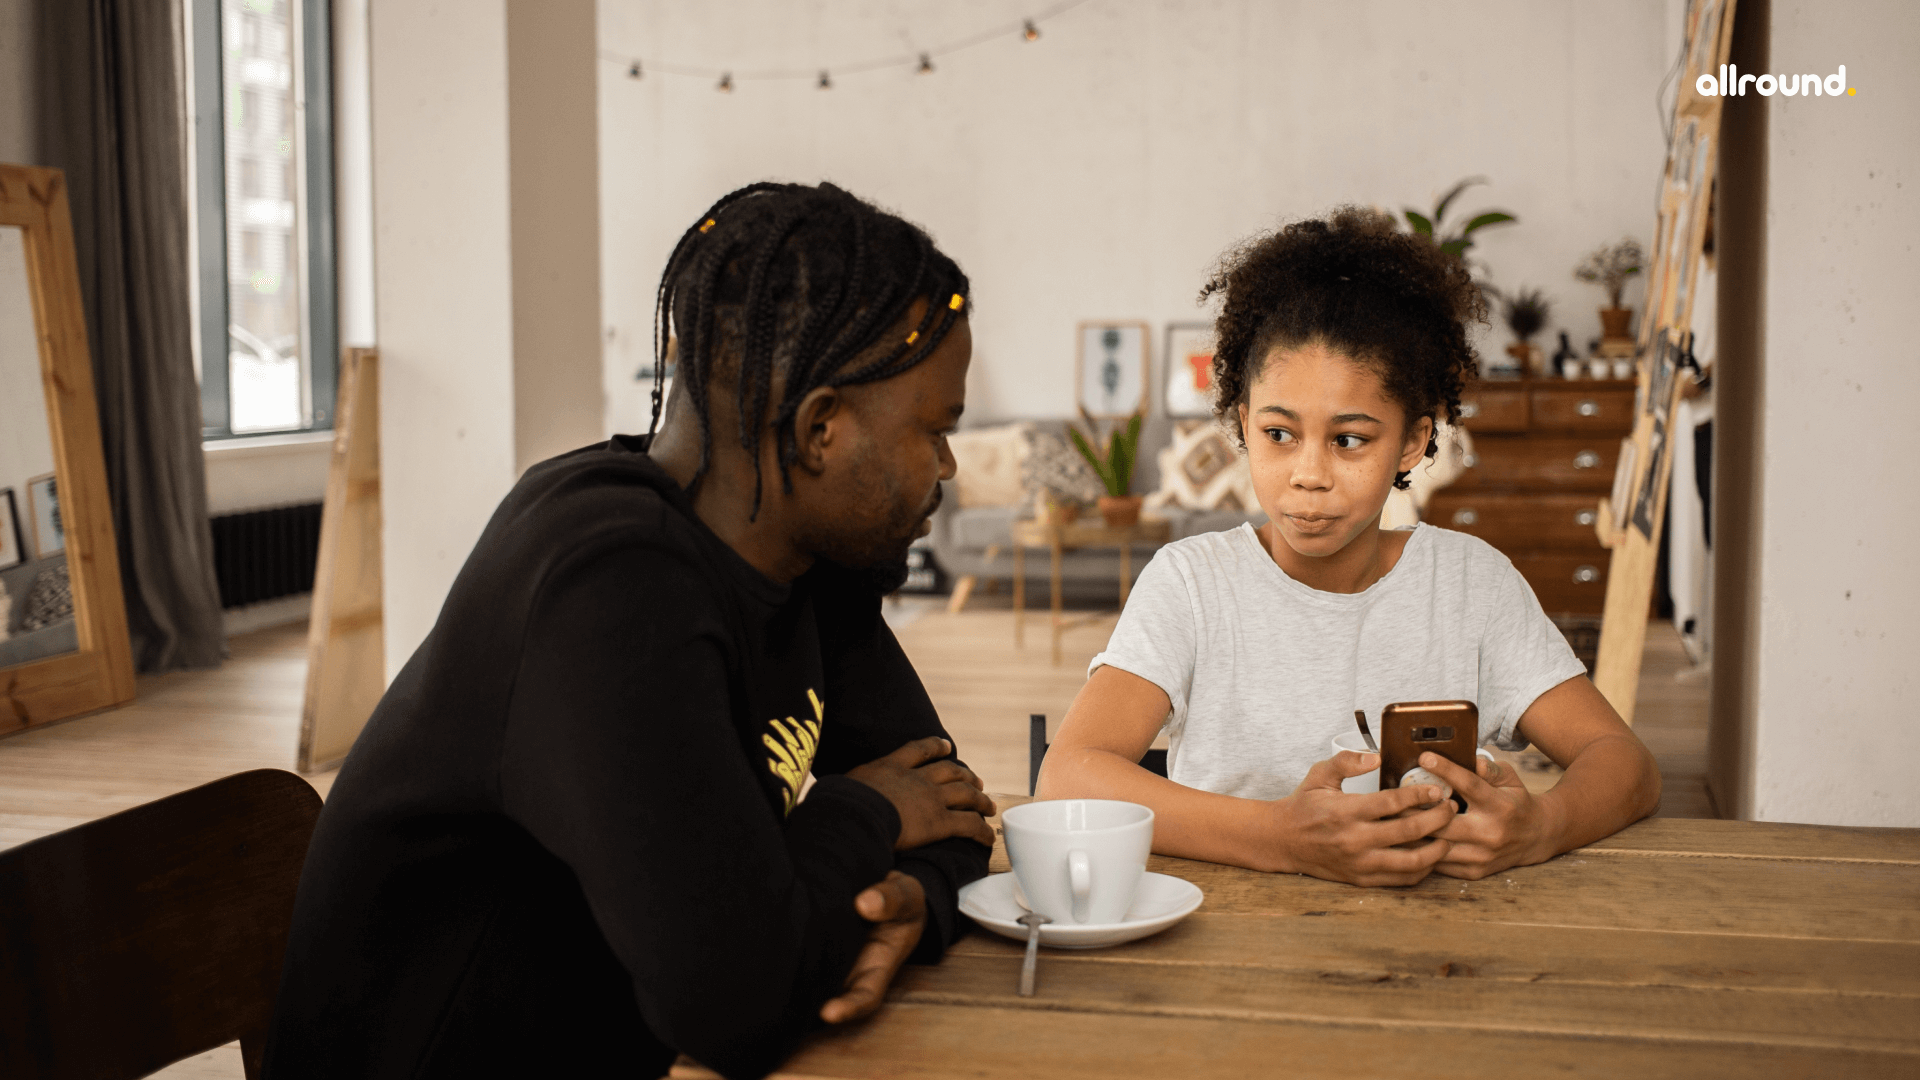 Why Using Mobile Phones While Eating Is Dangerous For Your Child